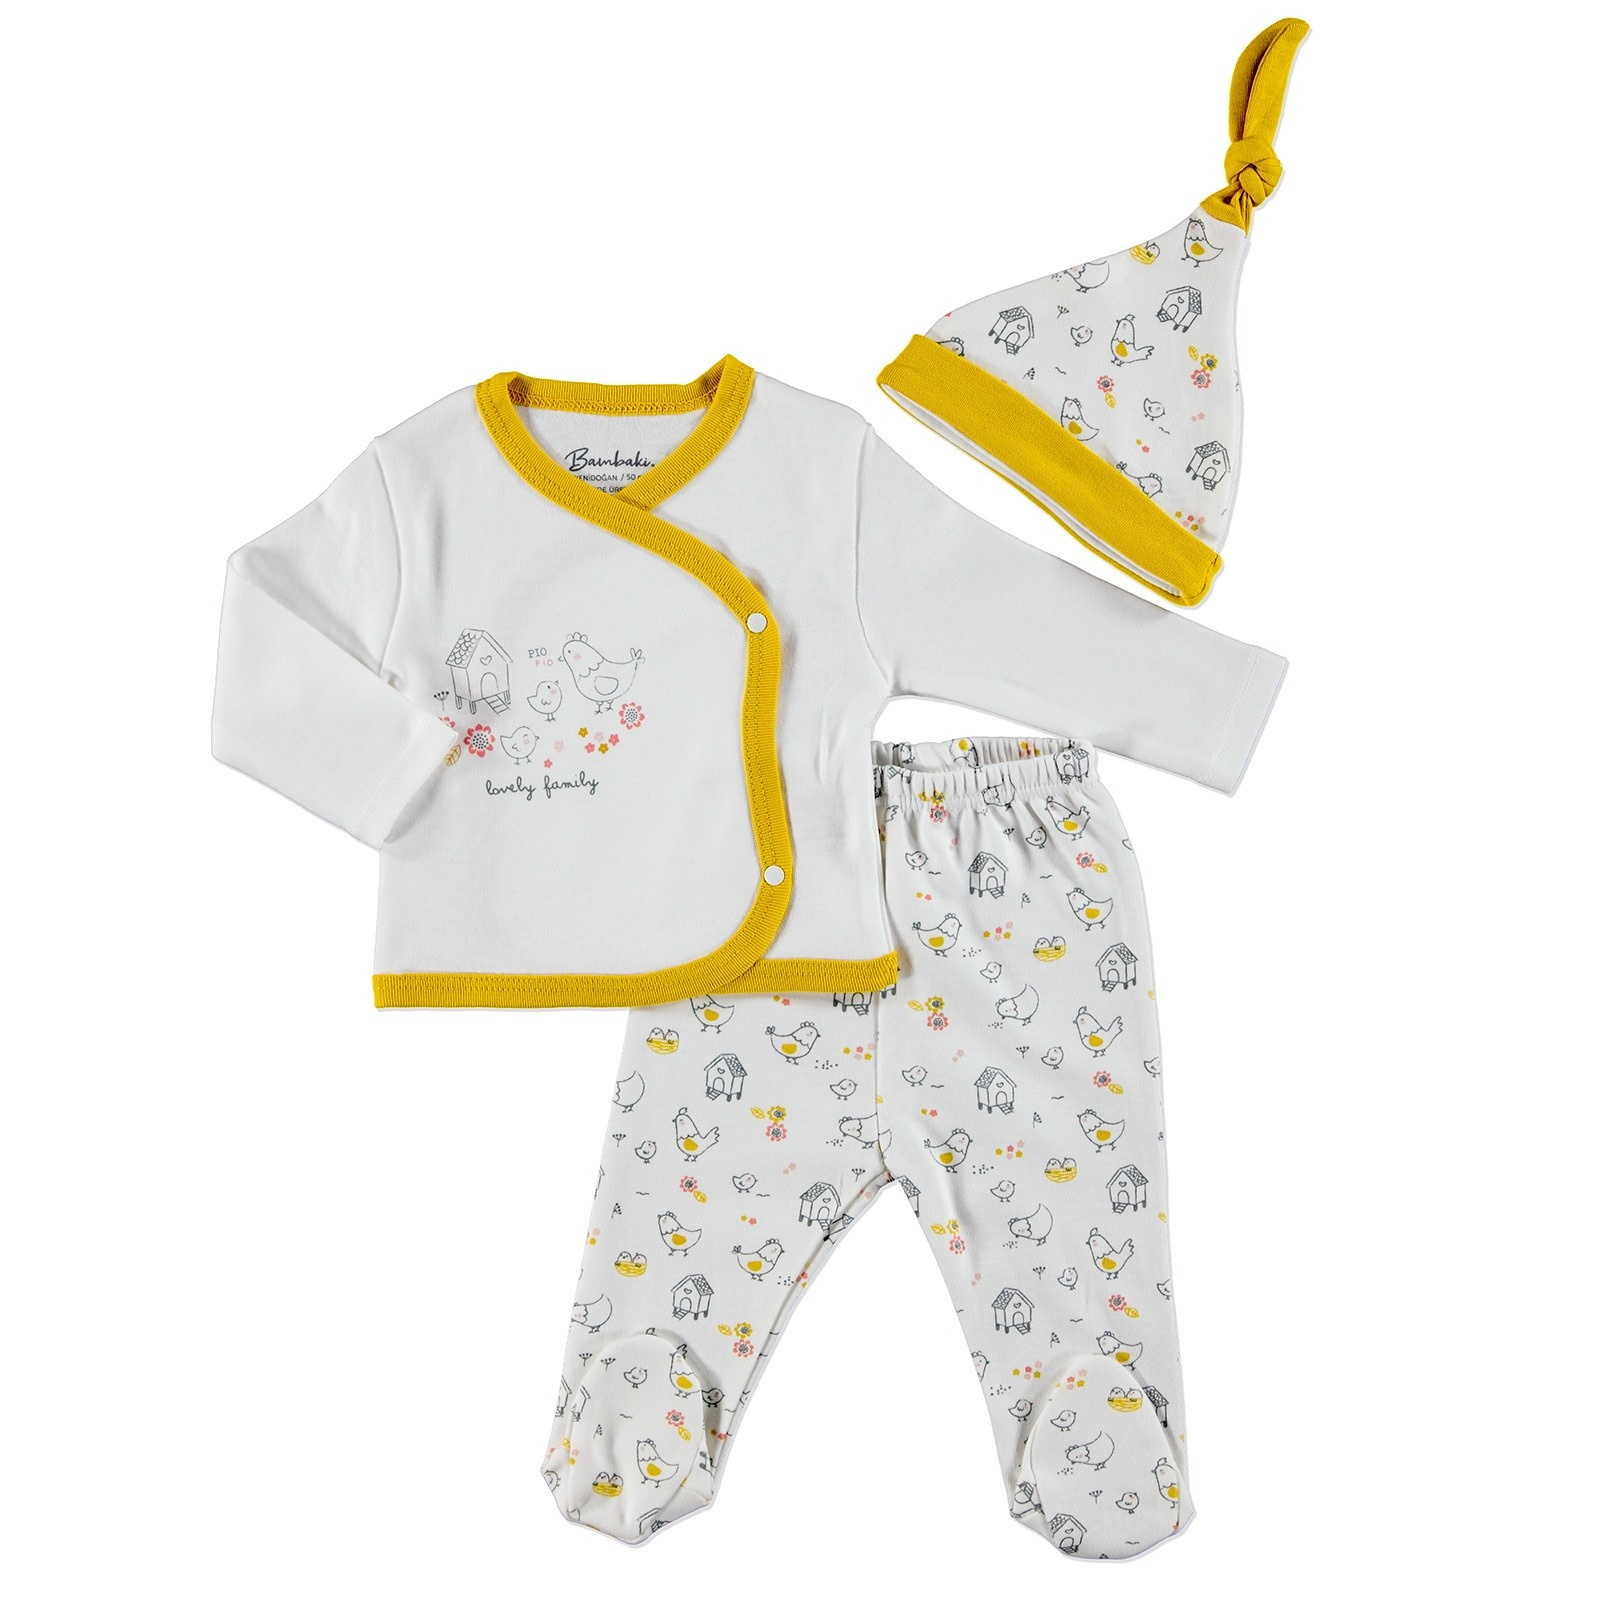 Ebebek Bambaki Happy Family Baby Girl Bodysuit Hat Footed Pants